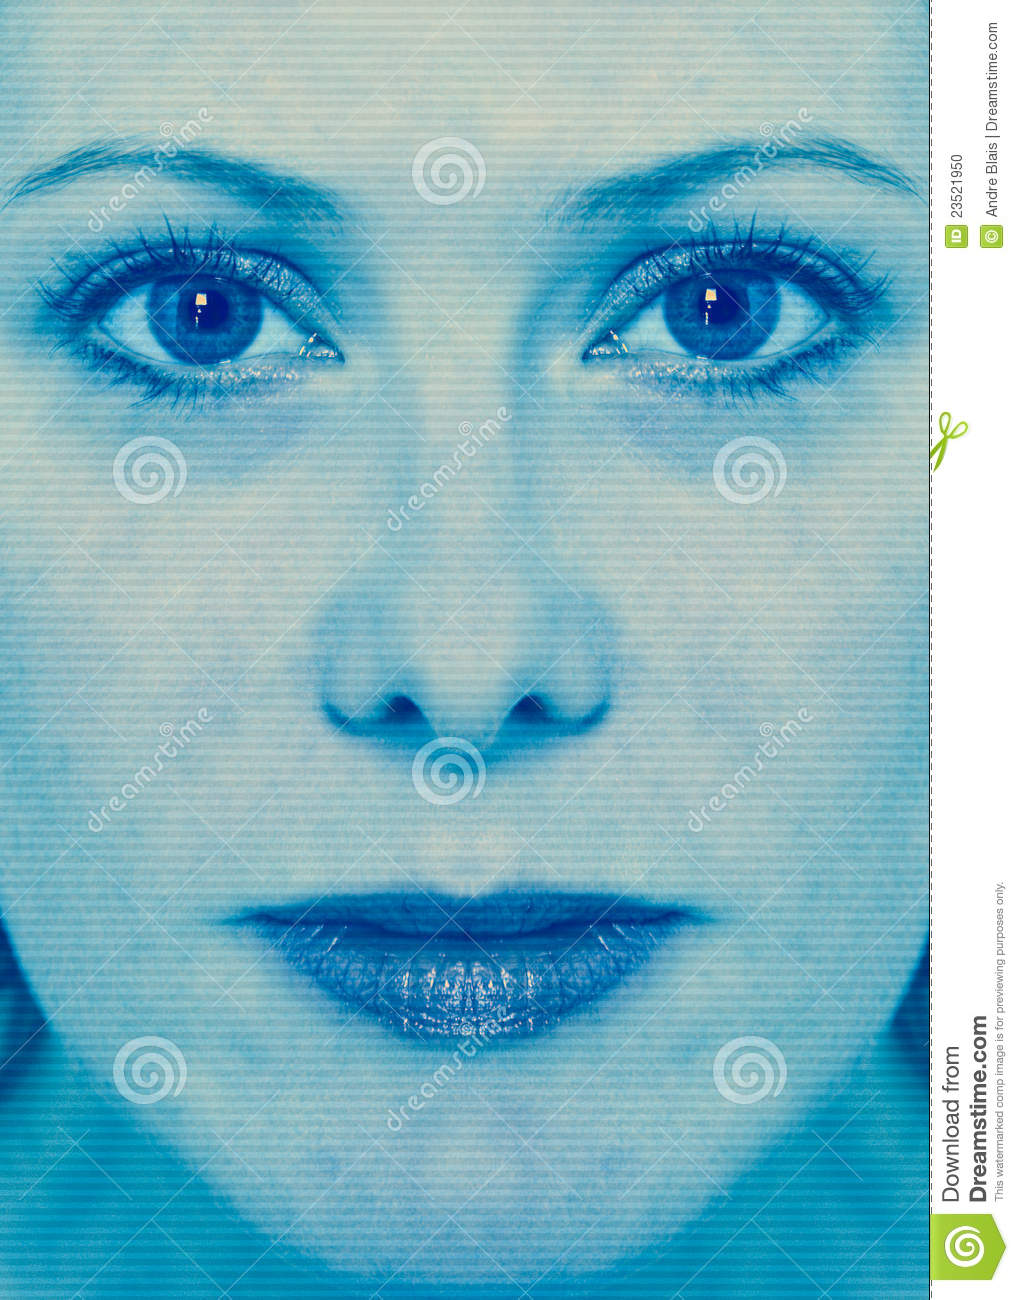 Workers On Wheels >> Woman Face Scan Stock Photo - Image: 23521950